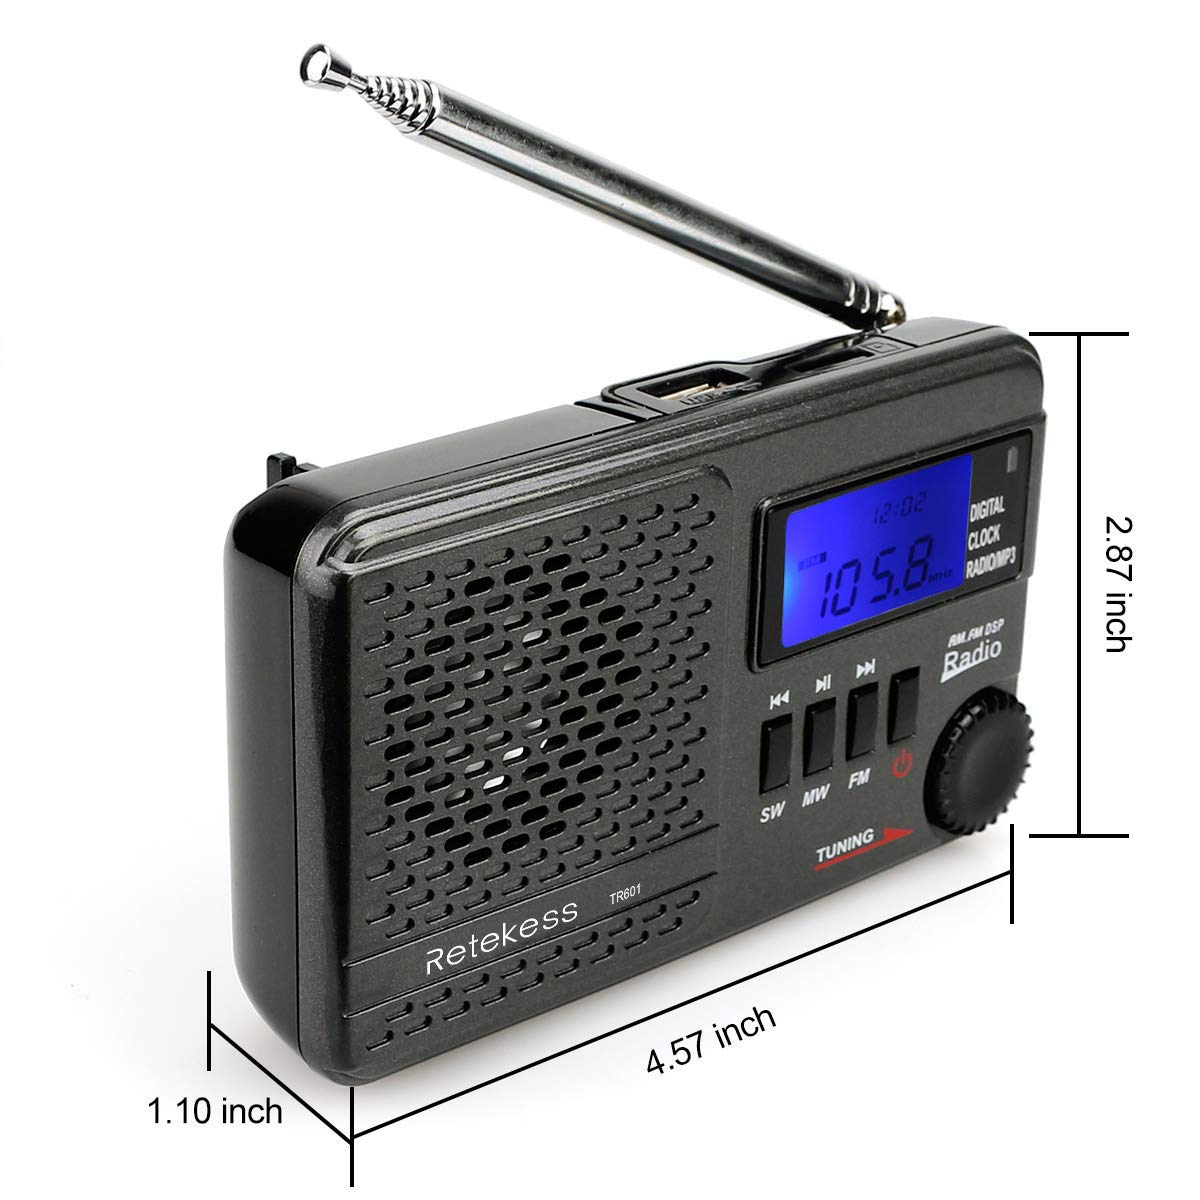 Retekess TR601 AM FM Radio Portable Shortwave Radio Support